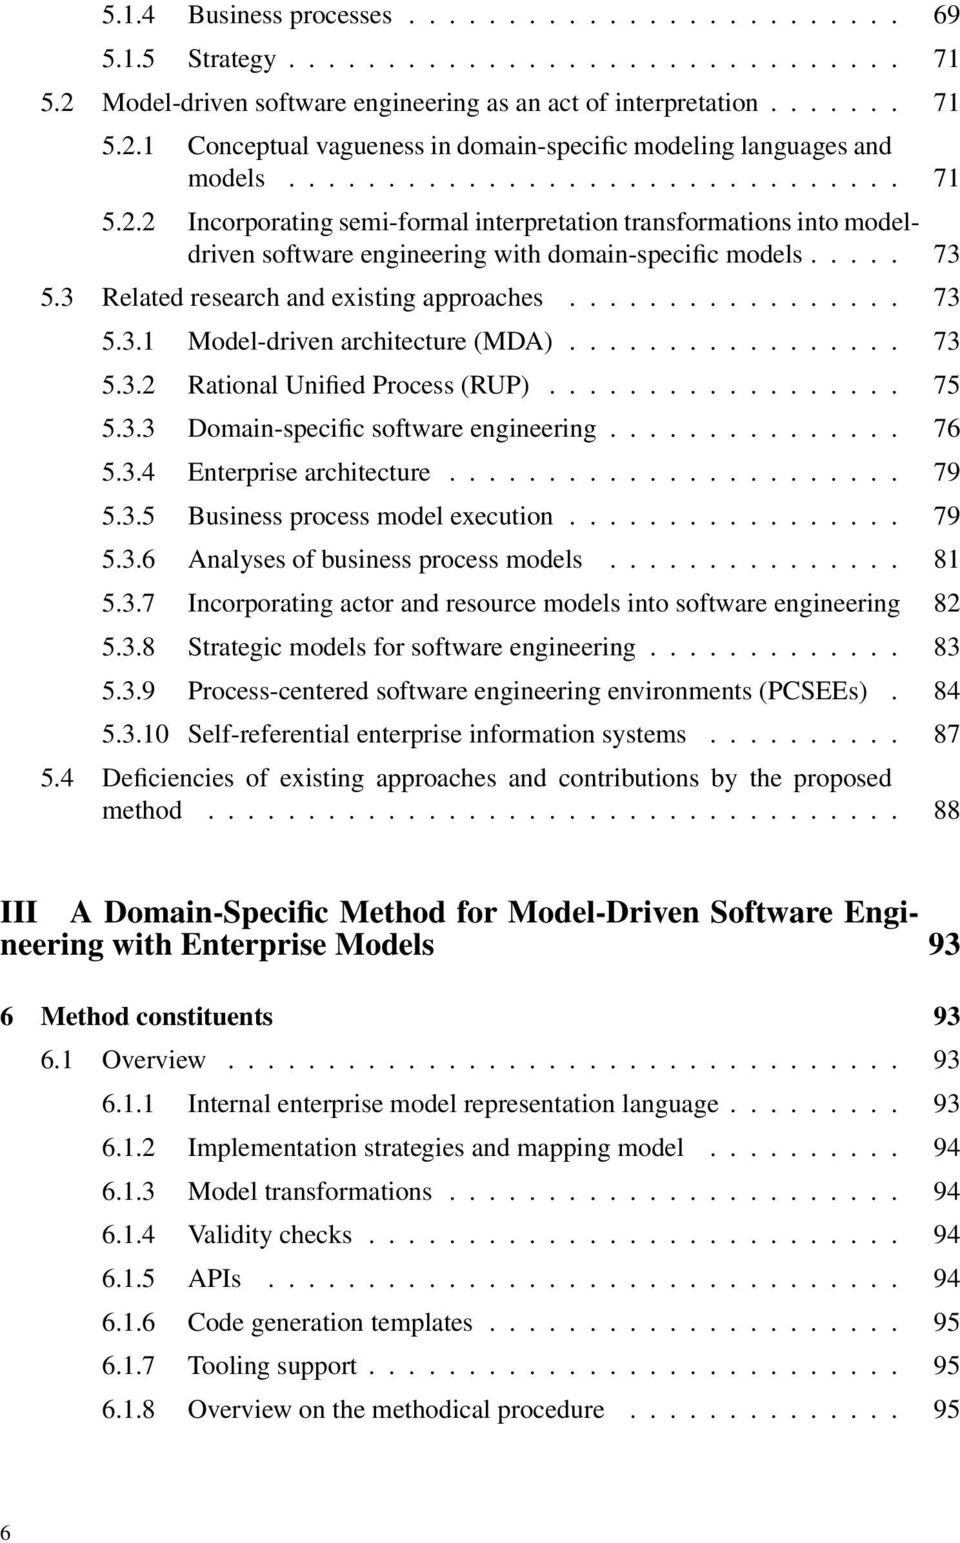 3 Related research and existing approaches................. 73 5.3.1 Model-driven architecture (MDA)................. 73 5.3.2 Rational Unified Process (RUP).................. 75 5.3.3 Domain-specific software engineering.